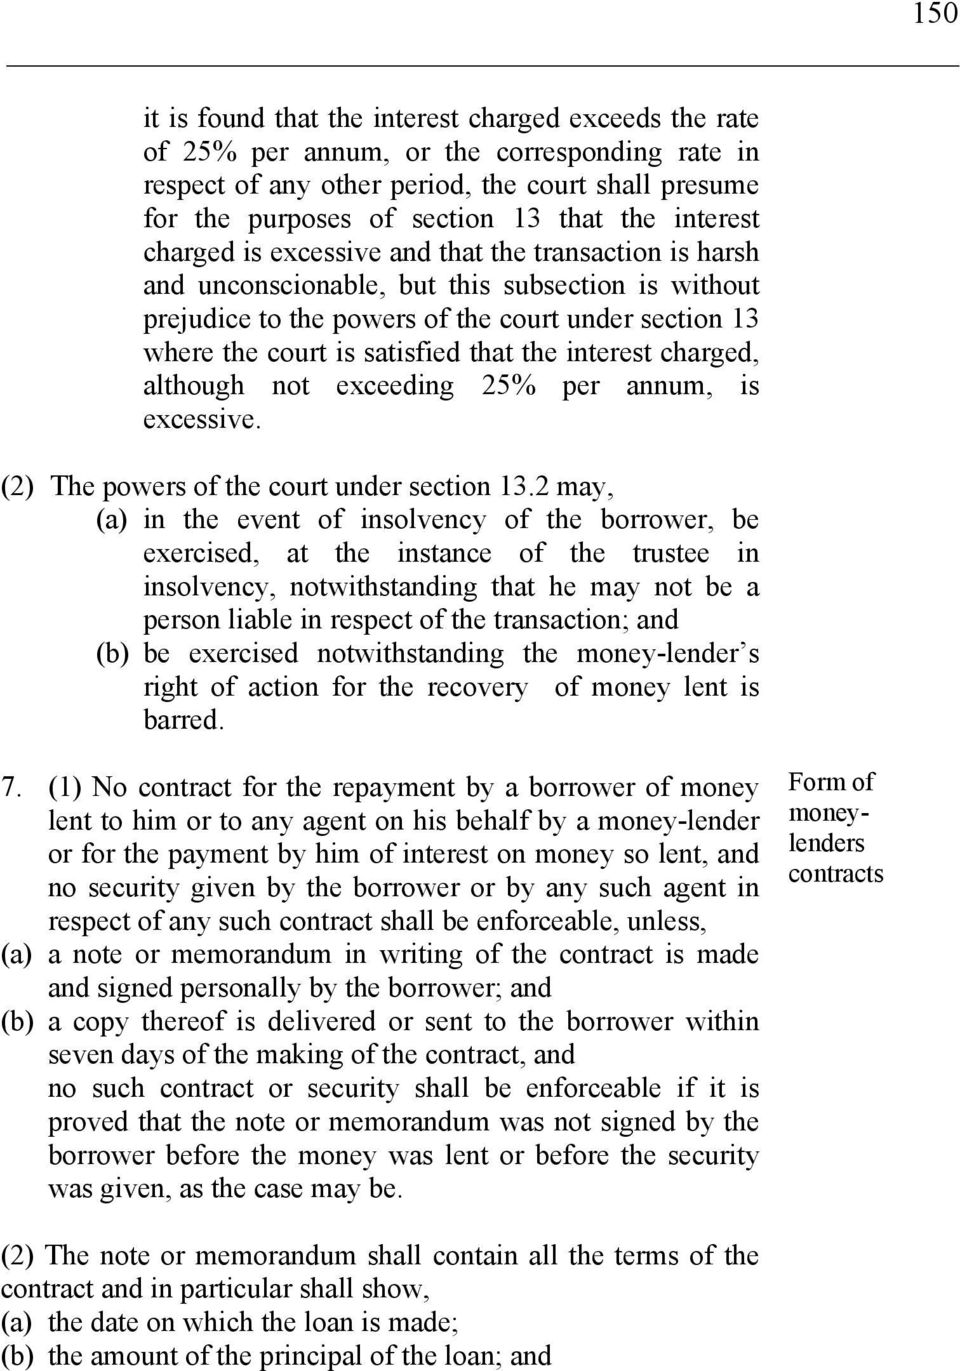 that the interest charged, although not exceeding 25% per annum, is excessive. (2) The powers of the court under section 13.